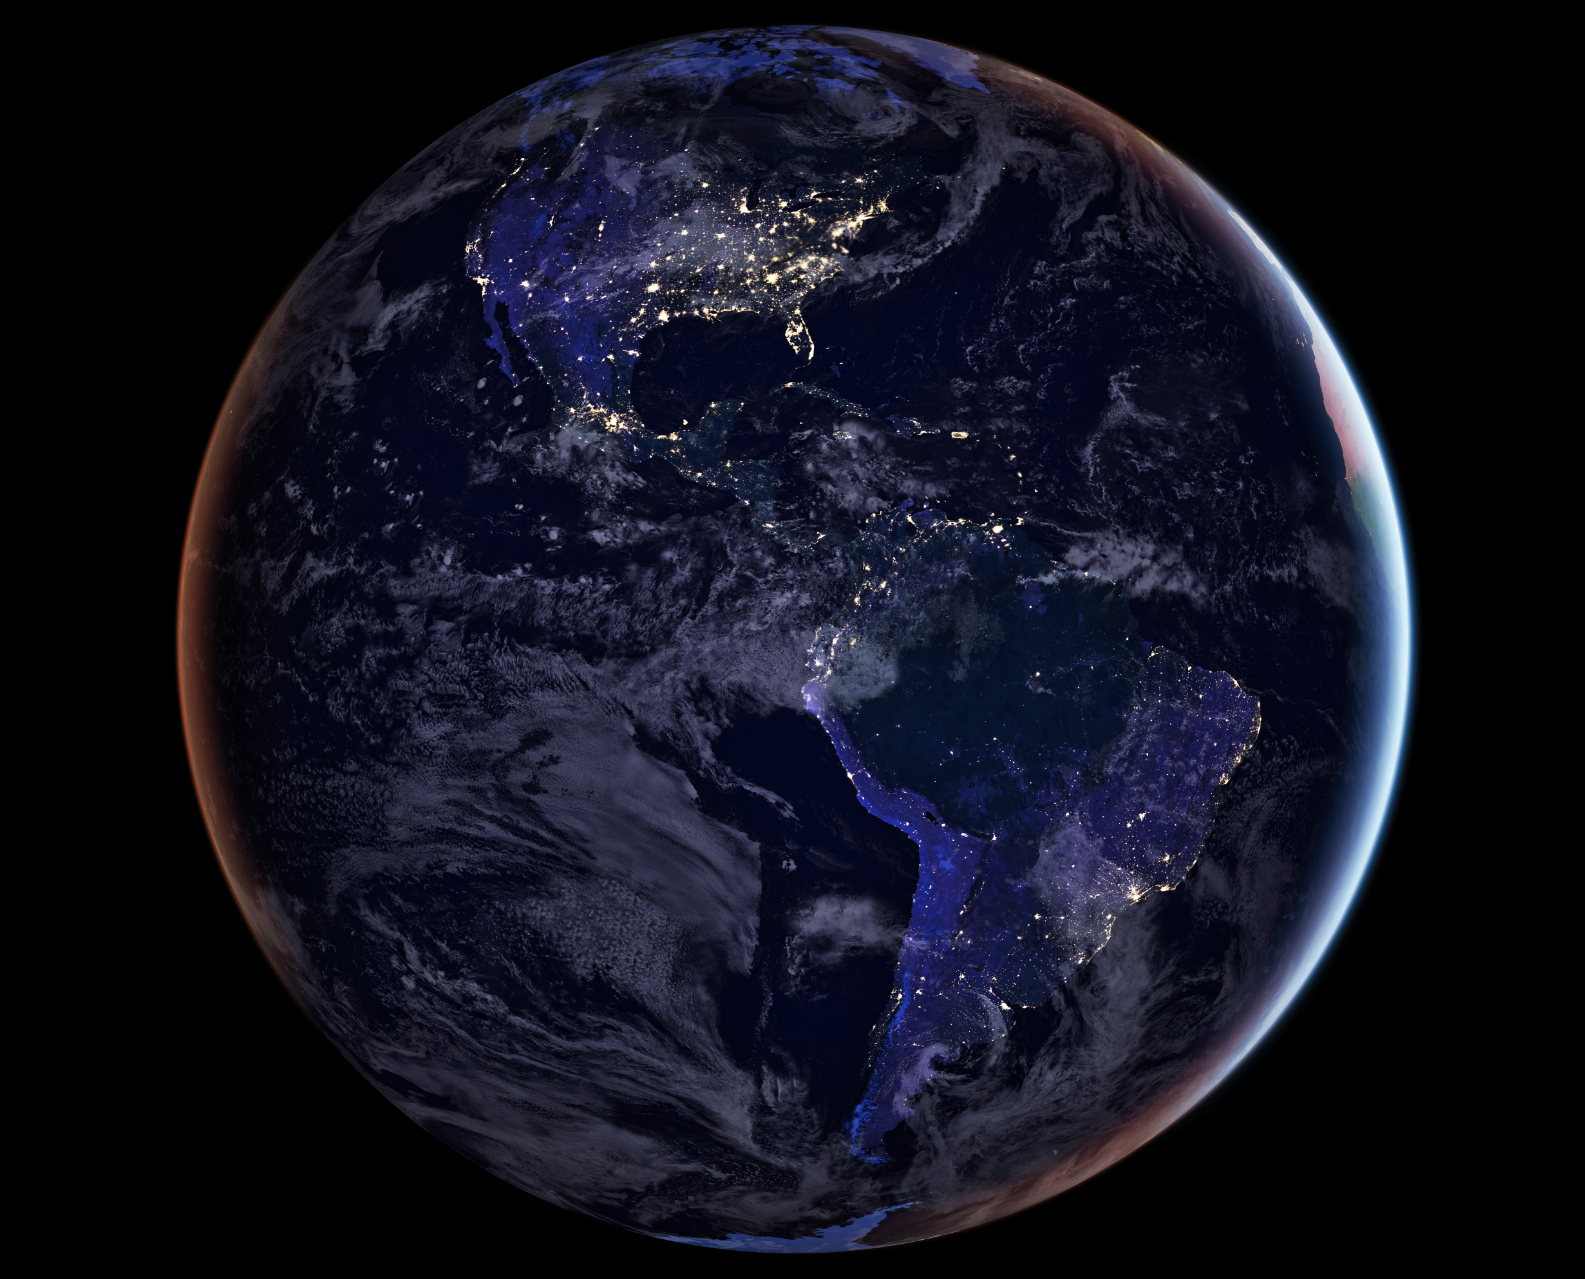 Image Credit:  NASA Earth Observatory image by Joshua Stevens, using Suomi NPP VIIRS data from Miguel Román, NASA's Goddard Space Flight Center  -  HDR tune by Universal-Sci